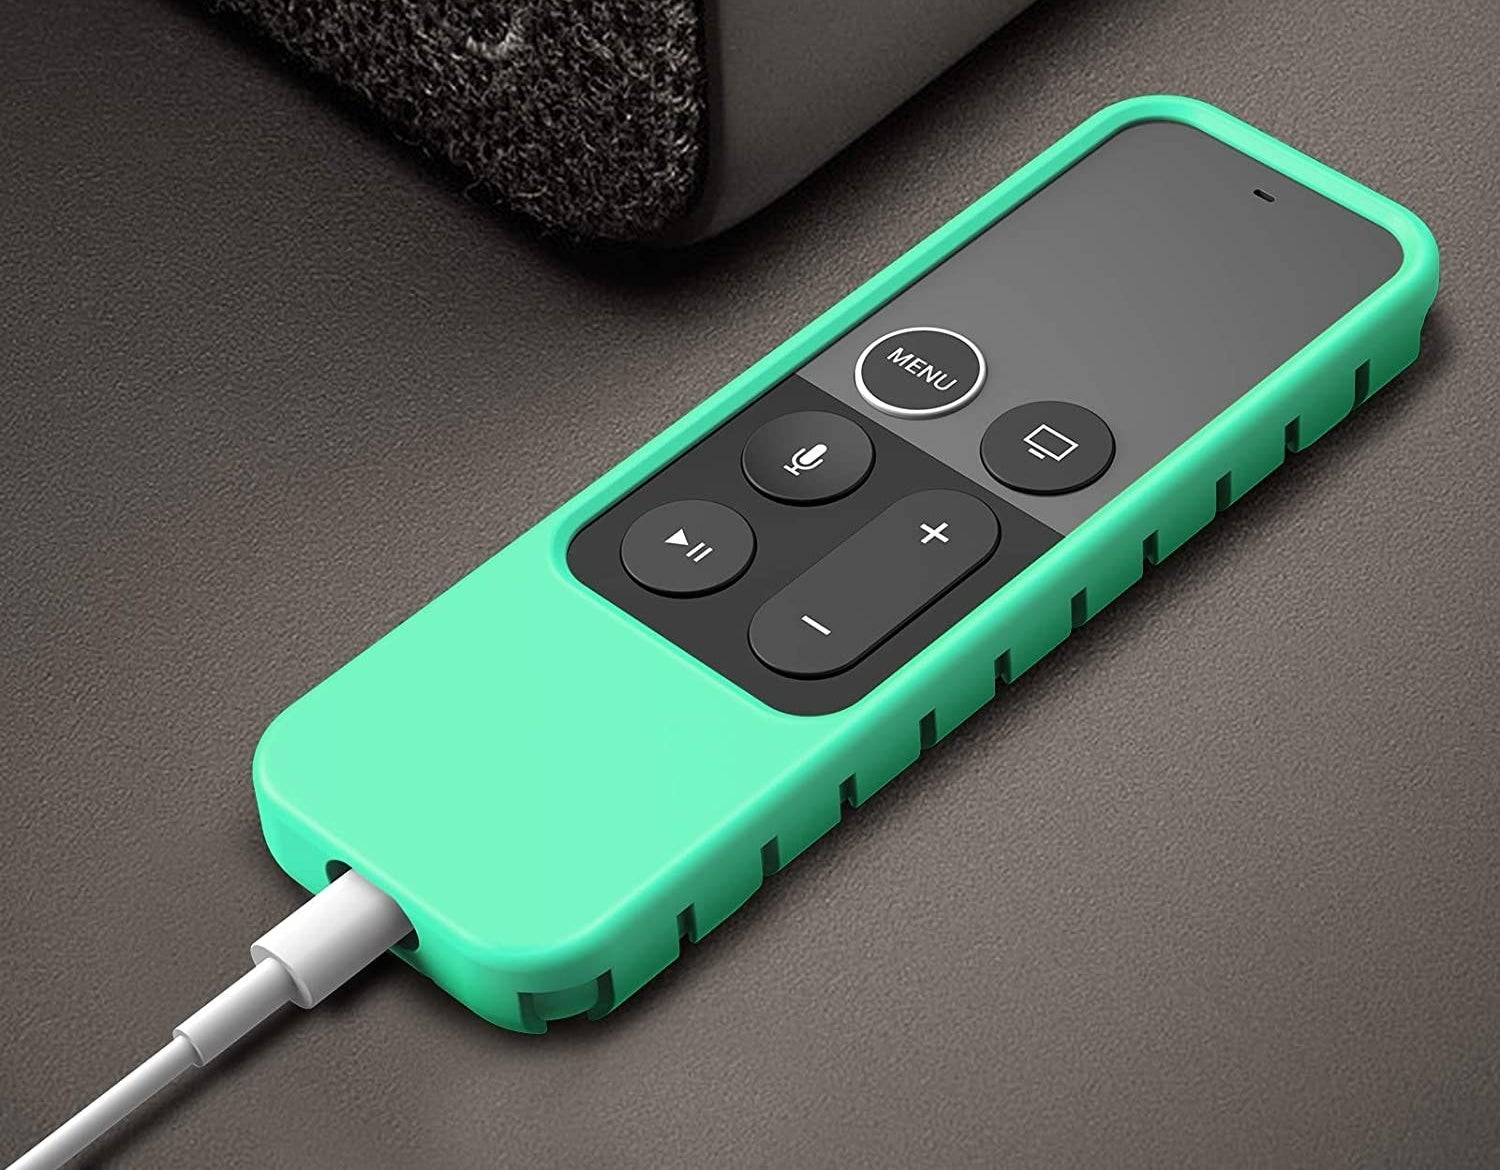 An Apple remote covered by a green silicone casing